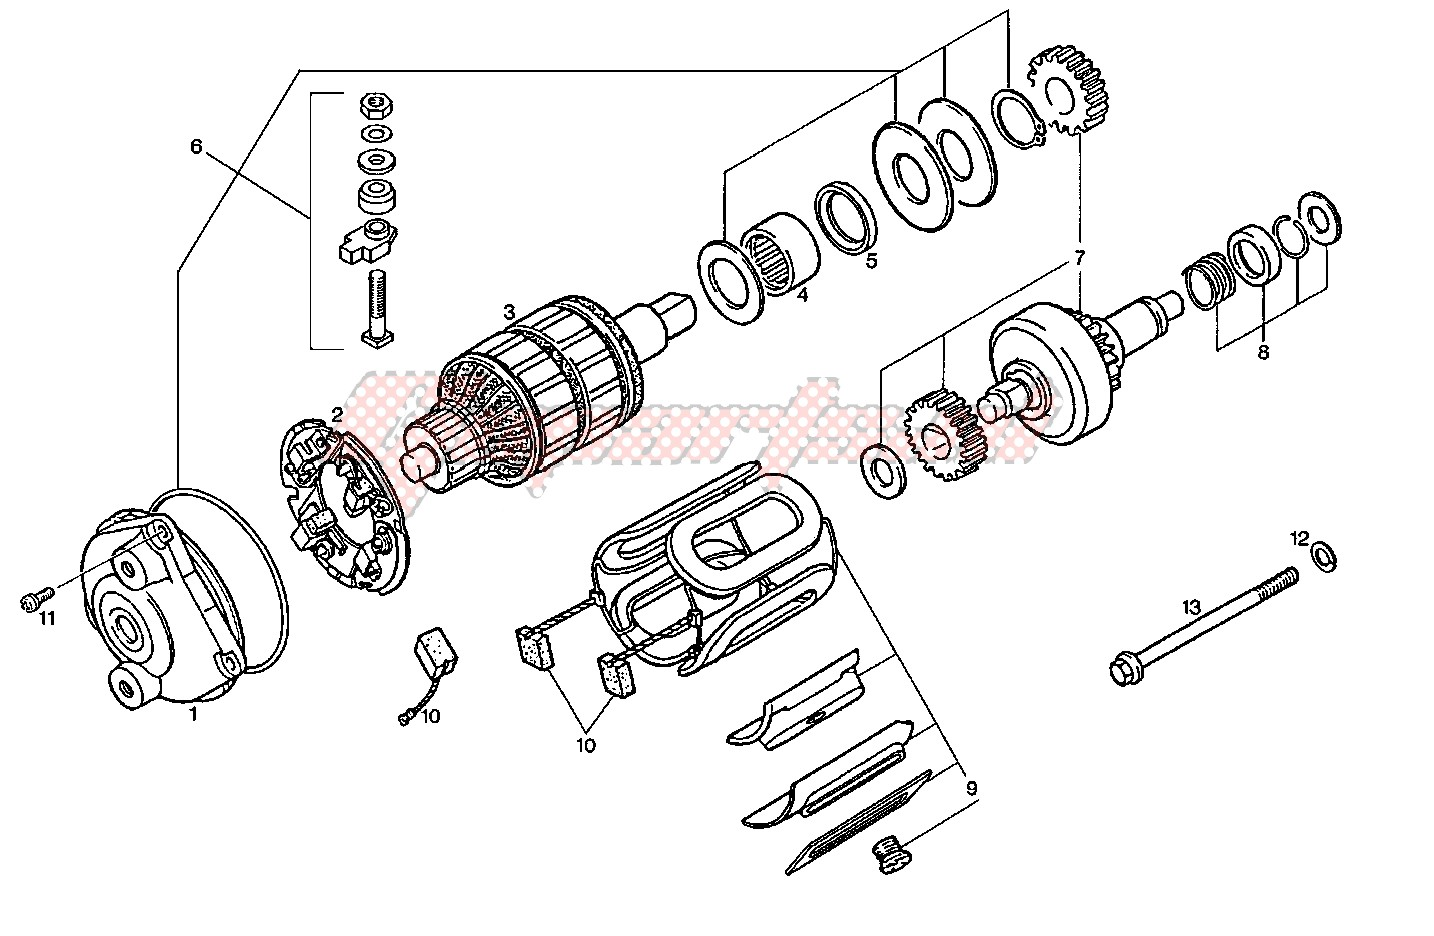 Engine-Starting motor